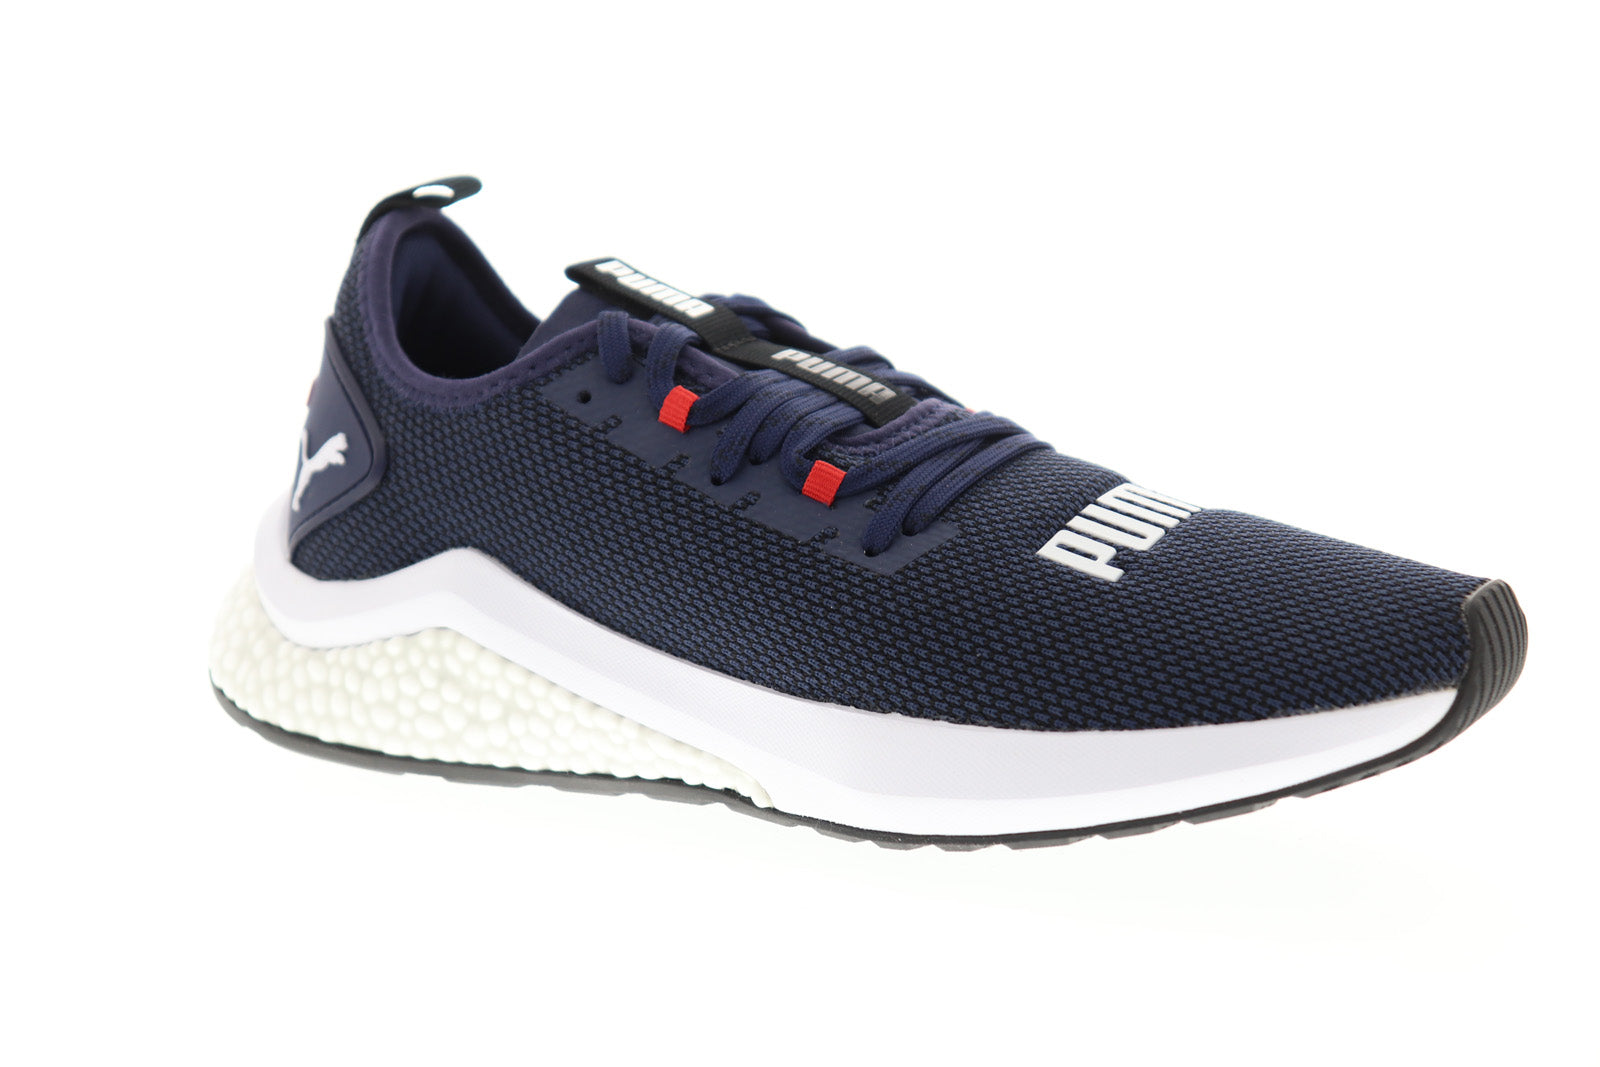 Puma Hybrid Nx Mens Gray Textile Low Top Lace Up Sneakers Shoes